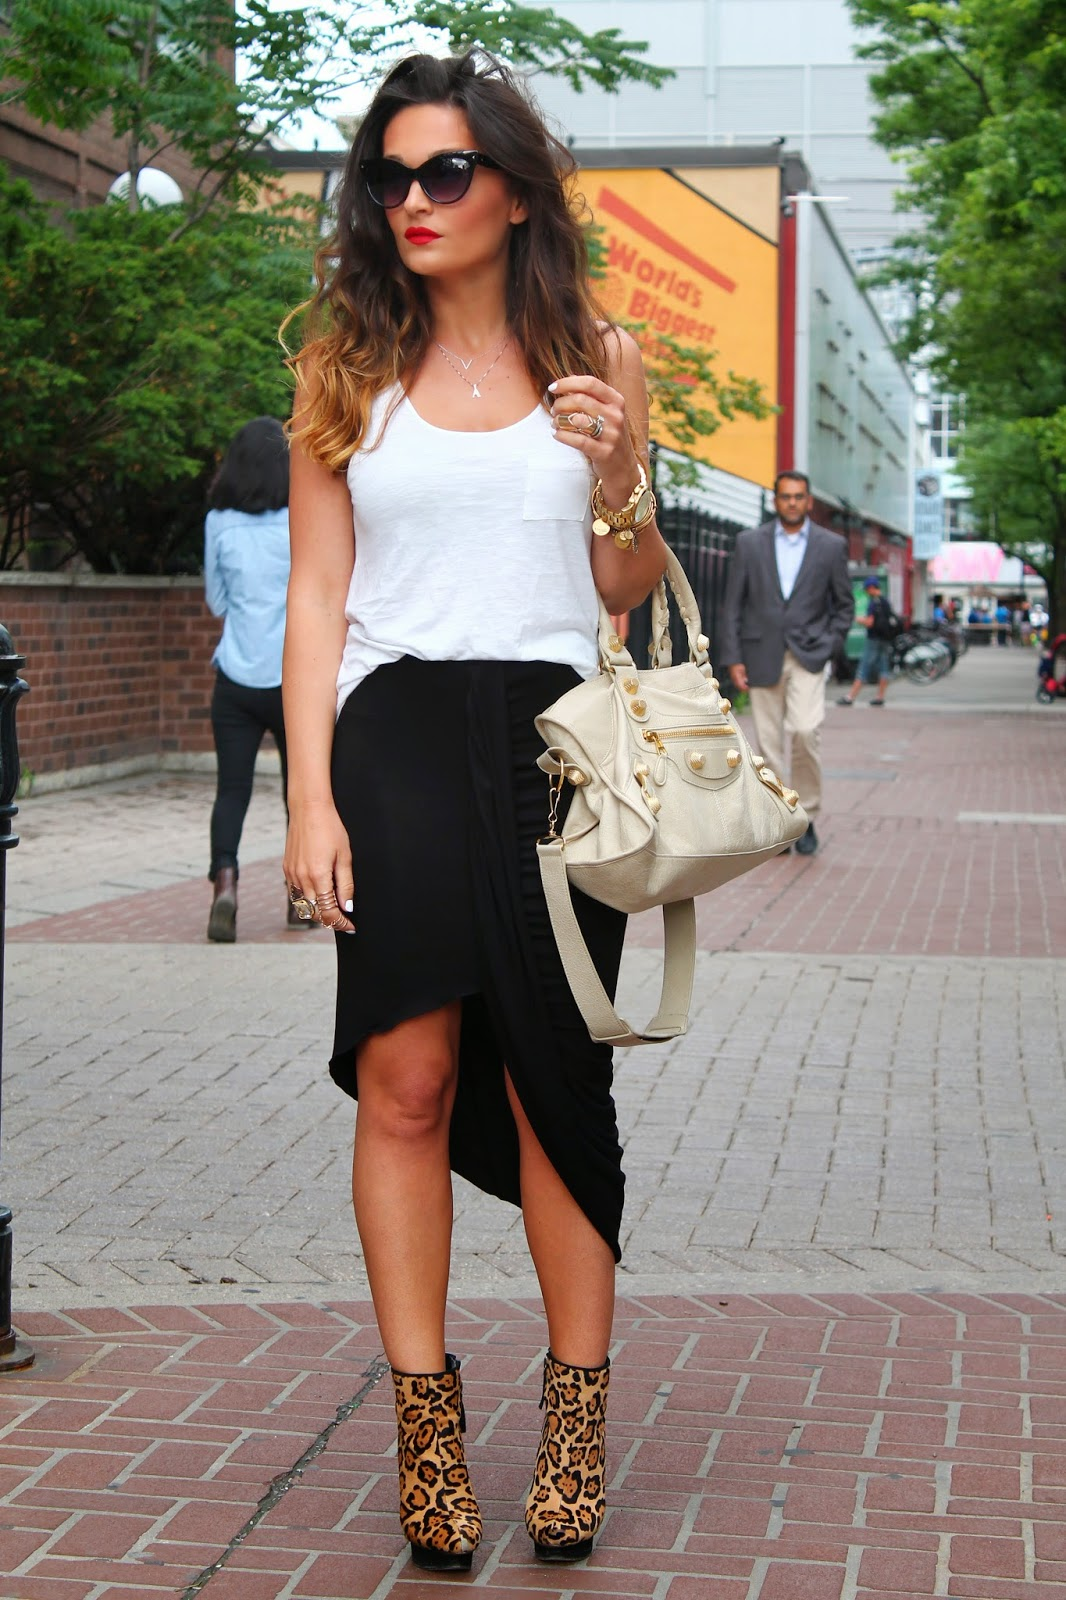 black skirt, black relaxed skirt, relaxed summer outfit, white and black outfit, leopard booties, leopard ankle boots, balenciaga bag, blogerke, letnja moda, canadian fashion blogger, toronto street style, yonge street, dundas square, ombre hair, red lips